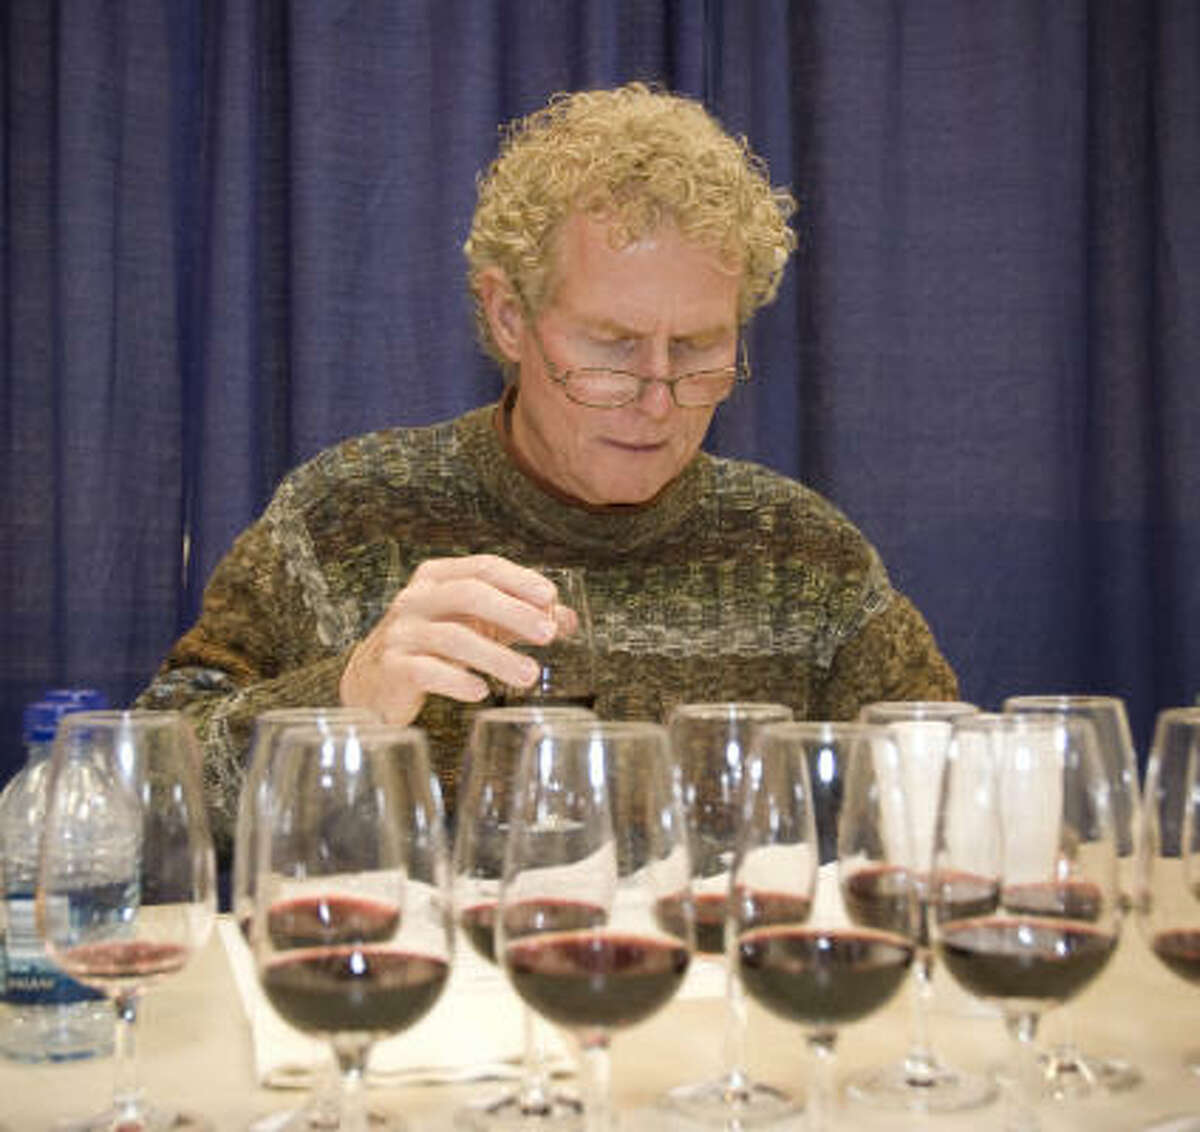 Dale Robertson samples different wines for the International Wine Competition.